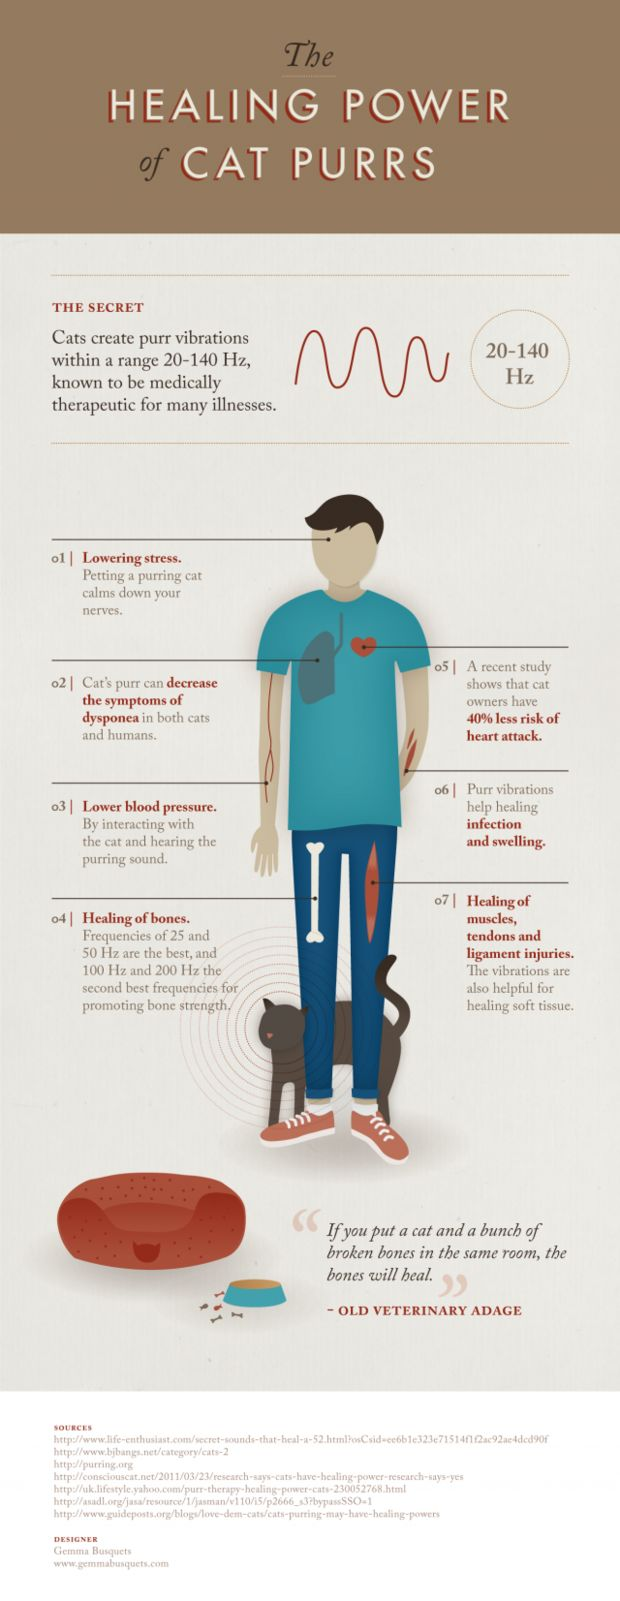 Snuggling up to your furry companion can actually be good for you.